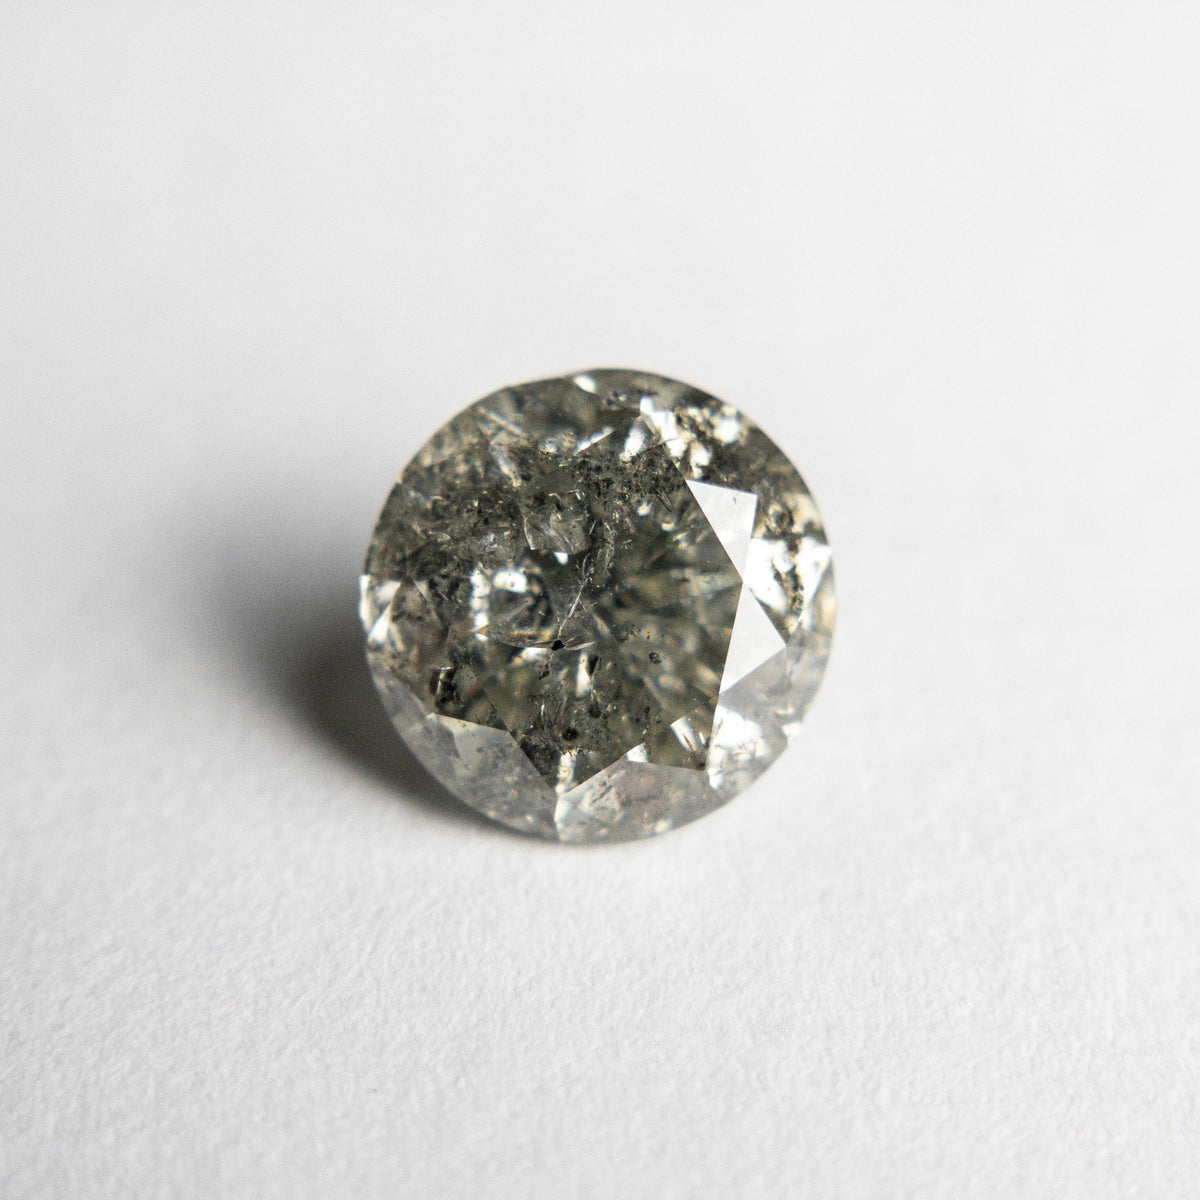 1.76ct 7.47x7.43x4.95mm Round Brilliant 18412-03